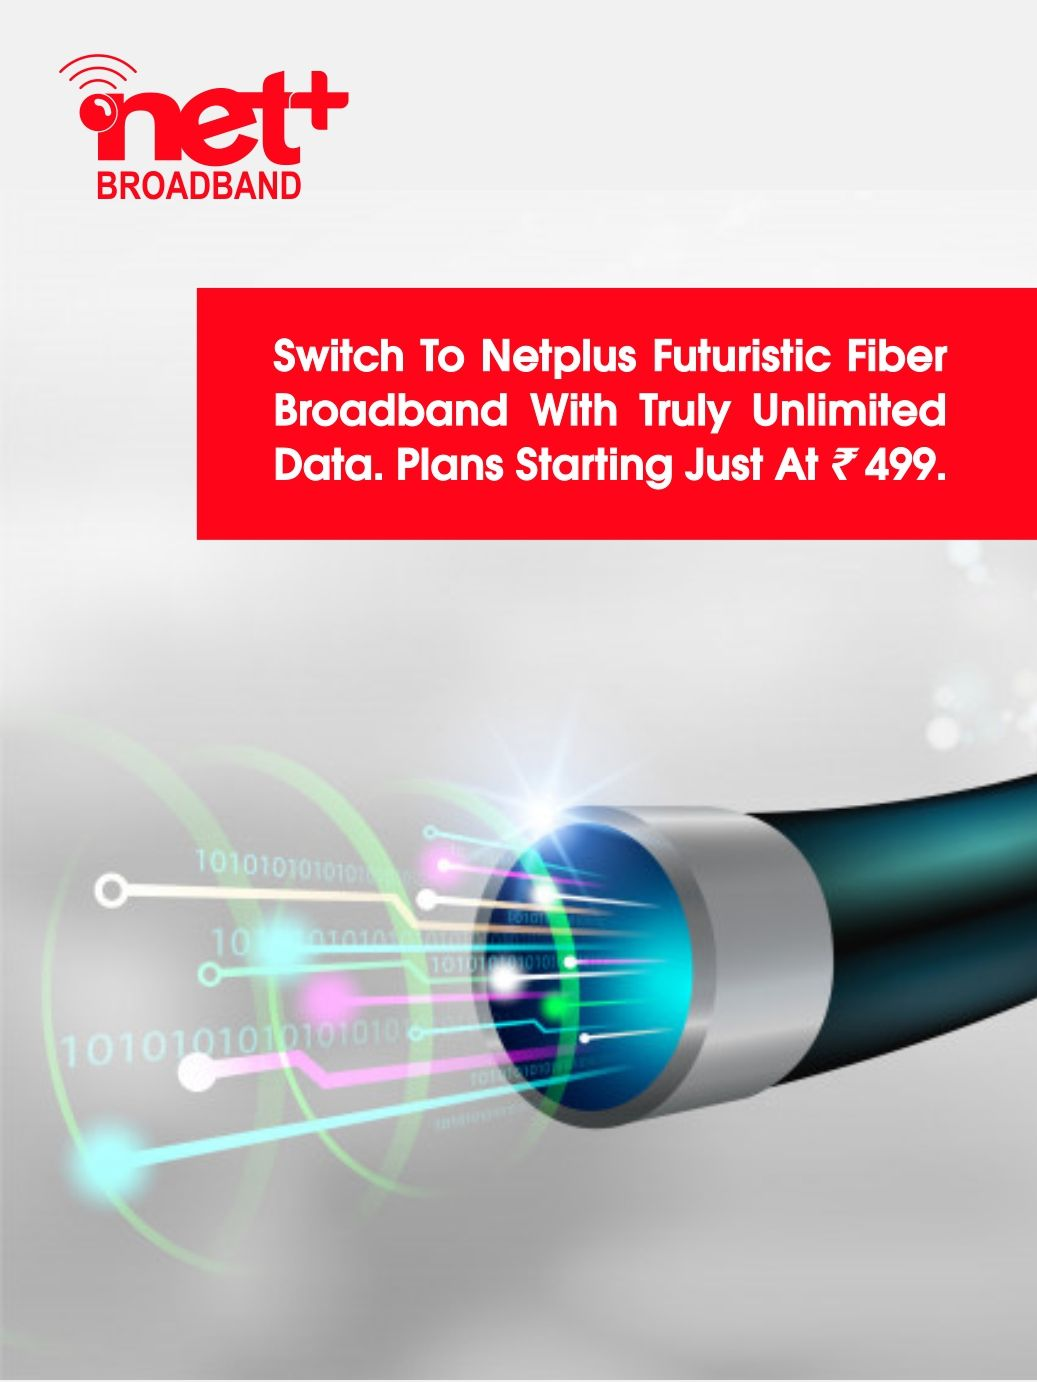 Pin by Netplus Broadband on Netplus Truly Unlimited